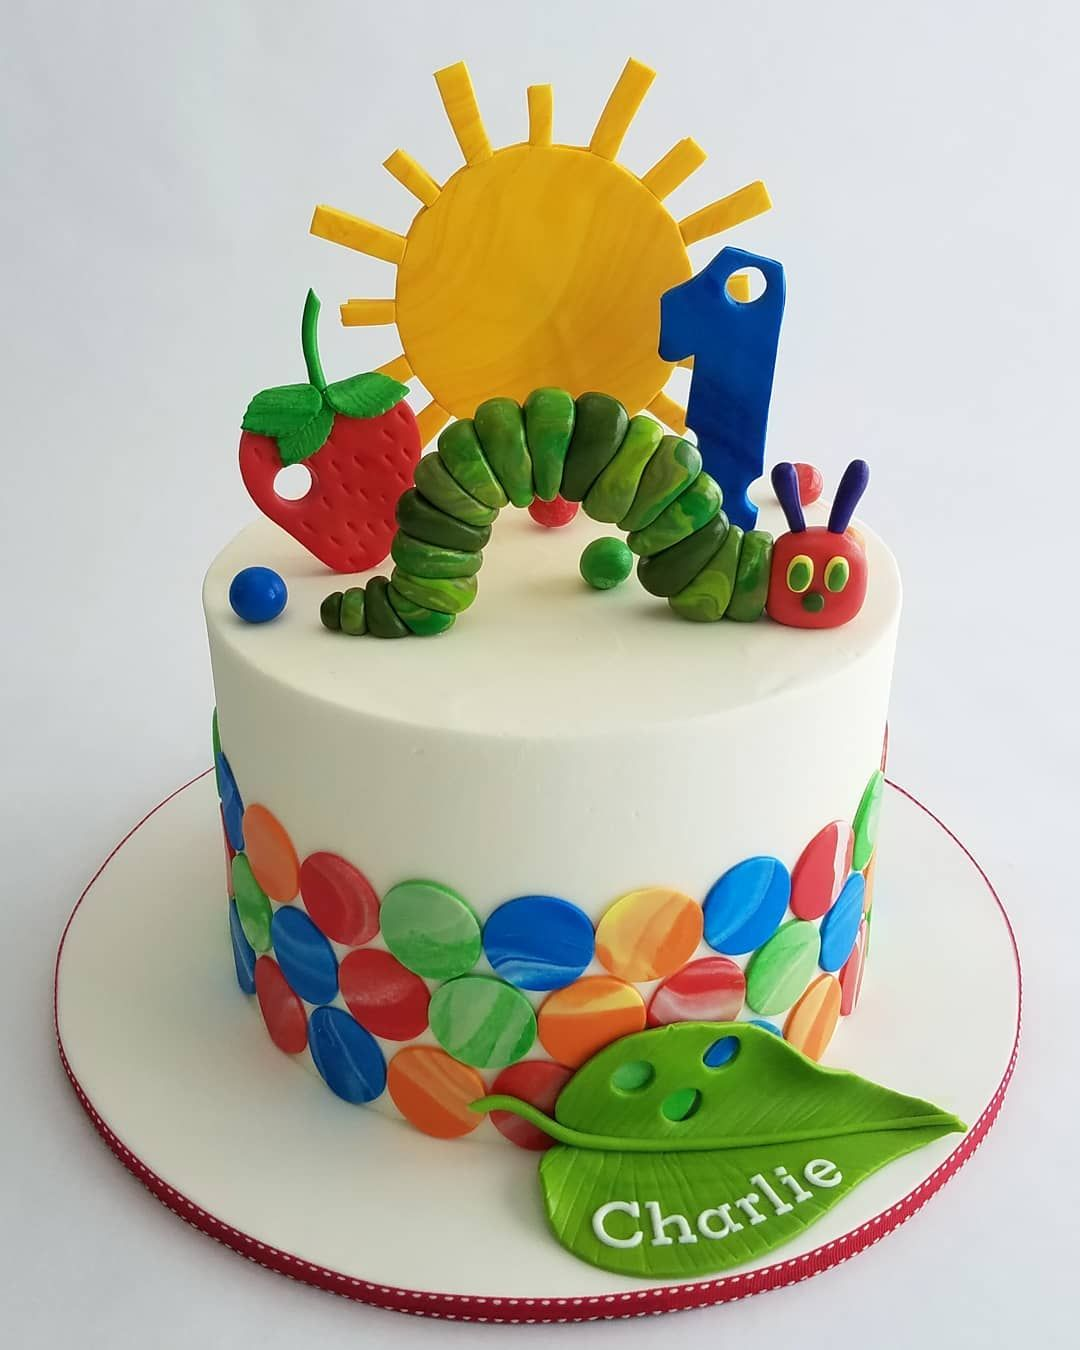 """Hope Windham Crocker on Instagram: """"Sweetest little book with all the fun colors! The Very Hungry Caterpillar is one of my favorites and I had so much fun creating this cake…"""""""